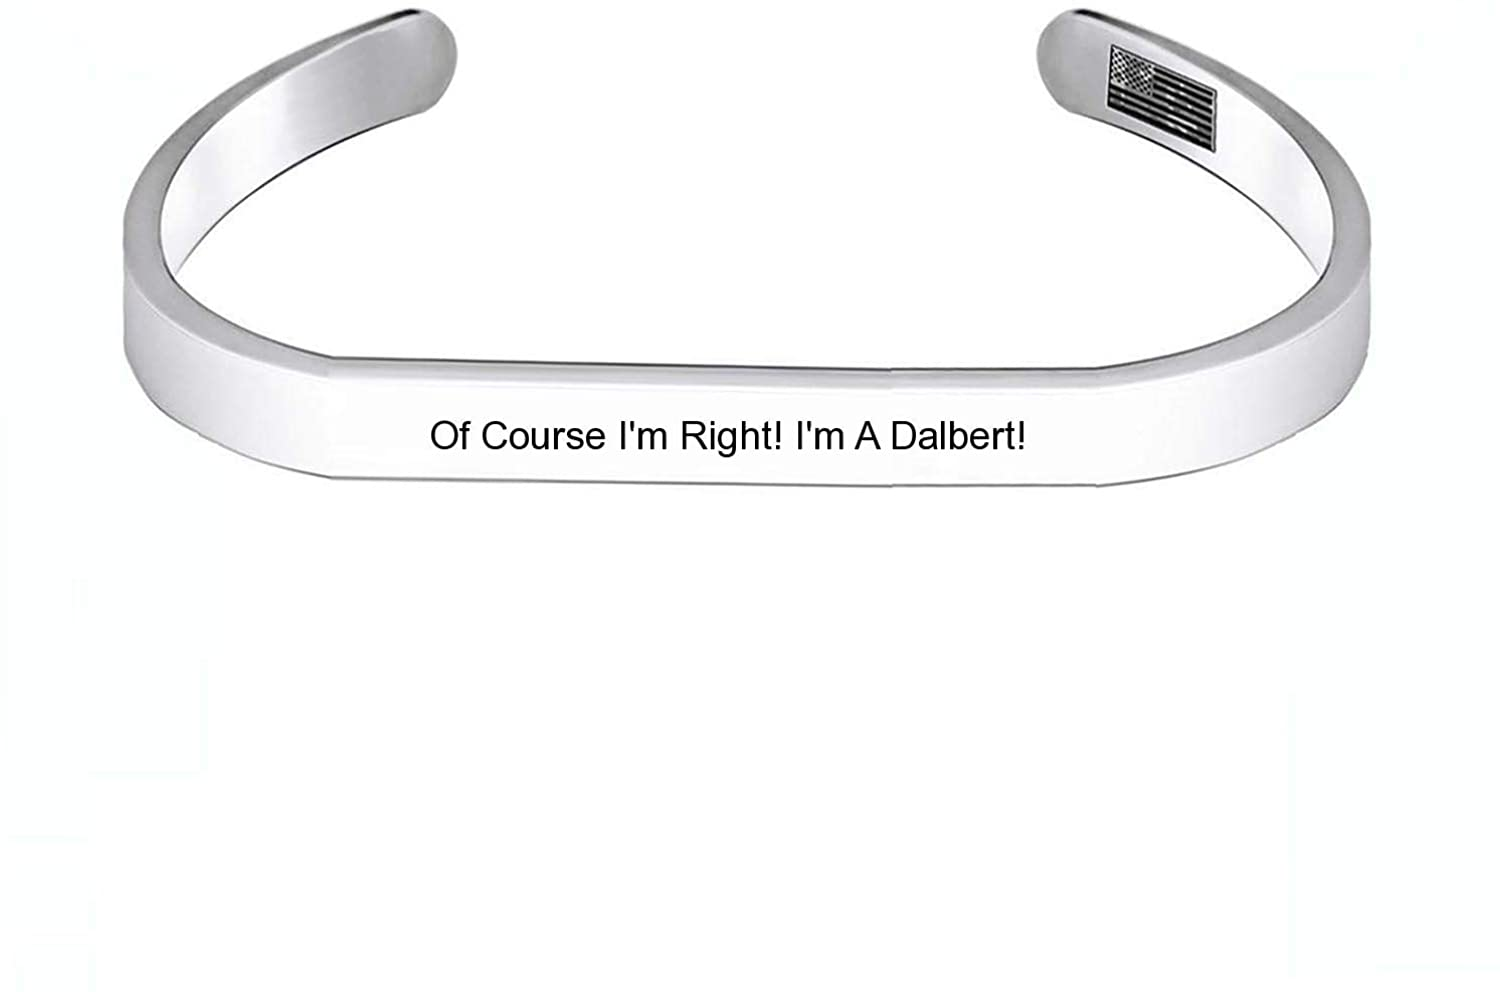 Enhome Cuff Bracelets of Course I'm Right! I'm A Dalbert! for Women Birthday Gifts for Her Silver Cuff Bangle American Flag Bracelet